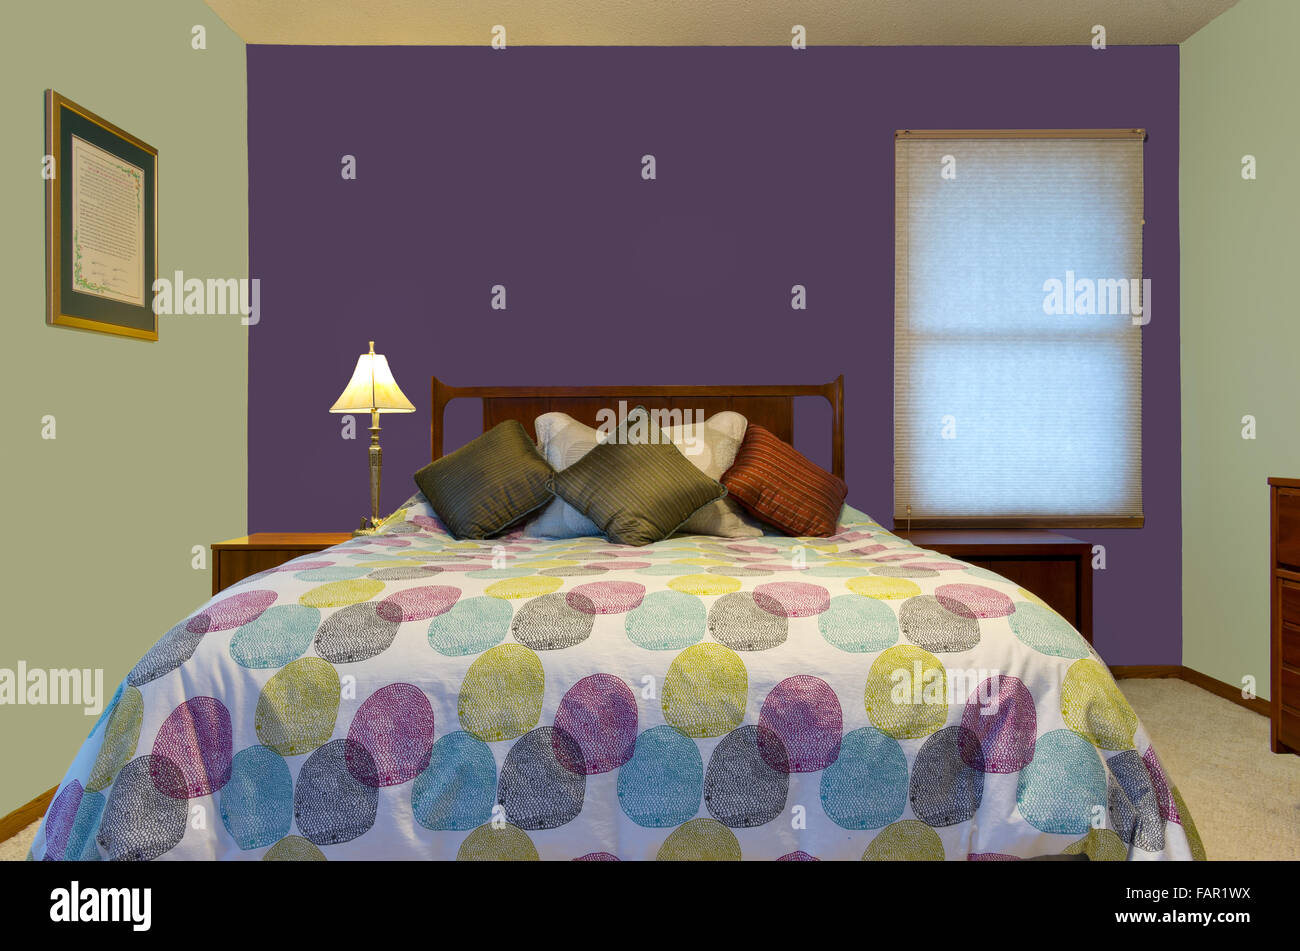 Pareti Viola E Verde : Purple pillows immagini purple pillows fotos stock alamy